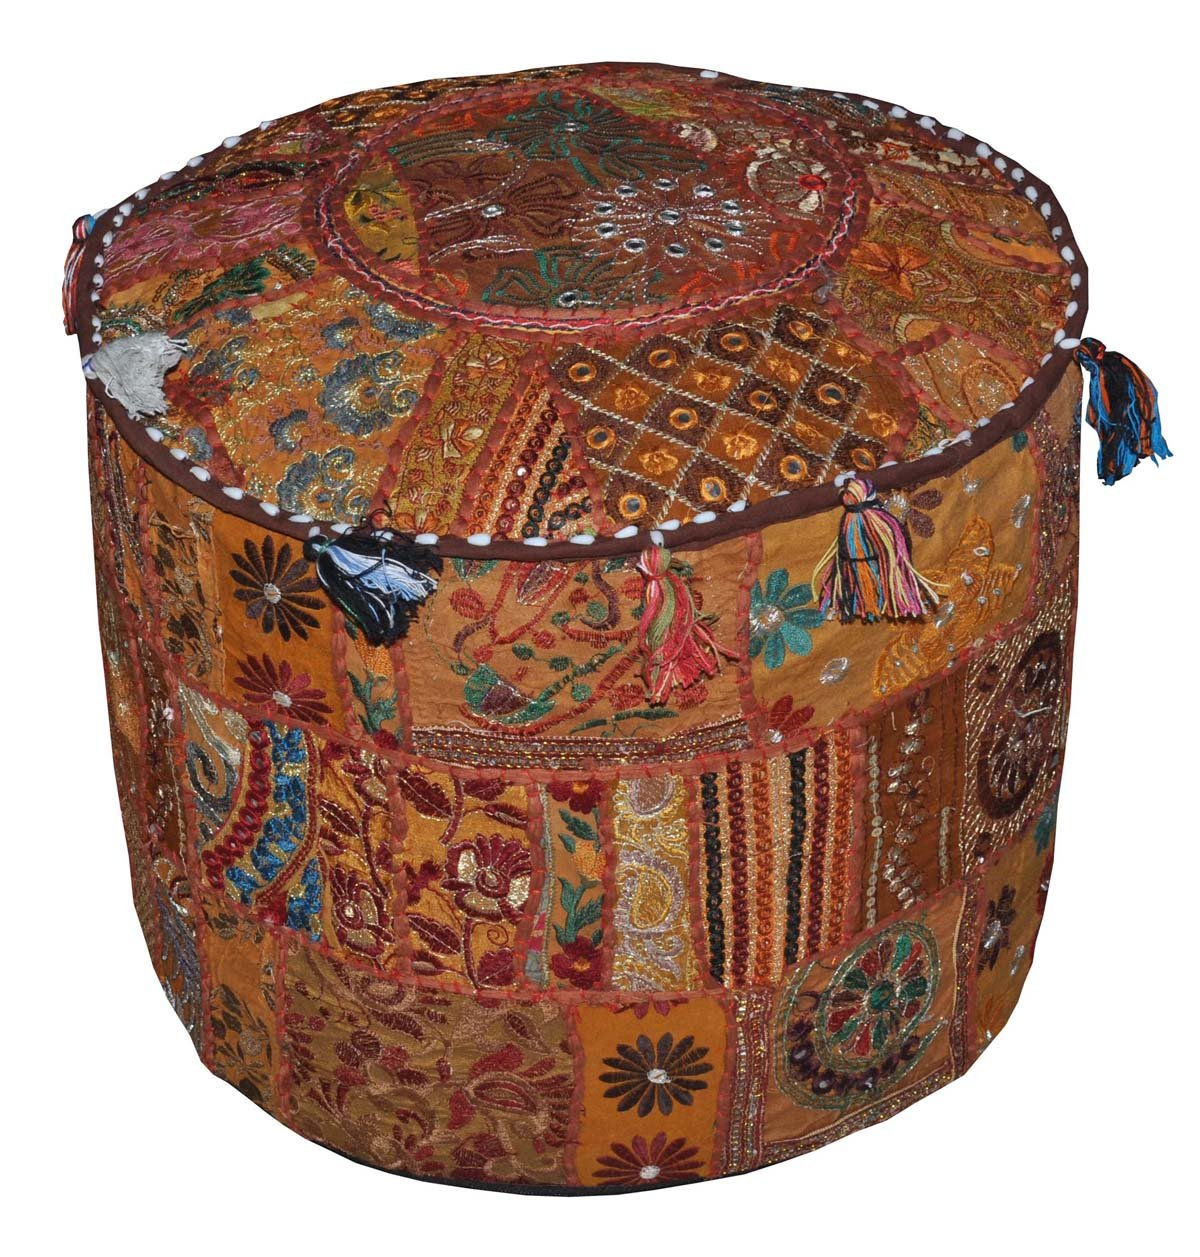 Indian Vintage Ottoman Embellished With Embroidery & Patchwork Foot Stool Floor Cushion, 46 X 33 Cm Marubhumi